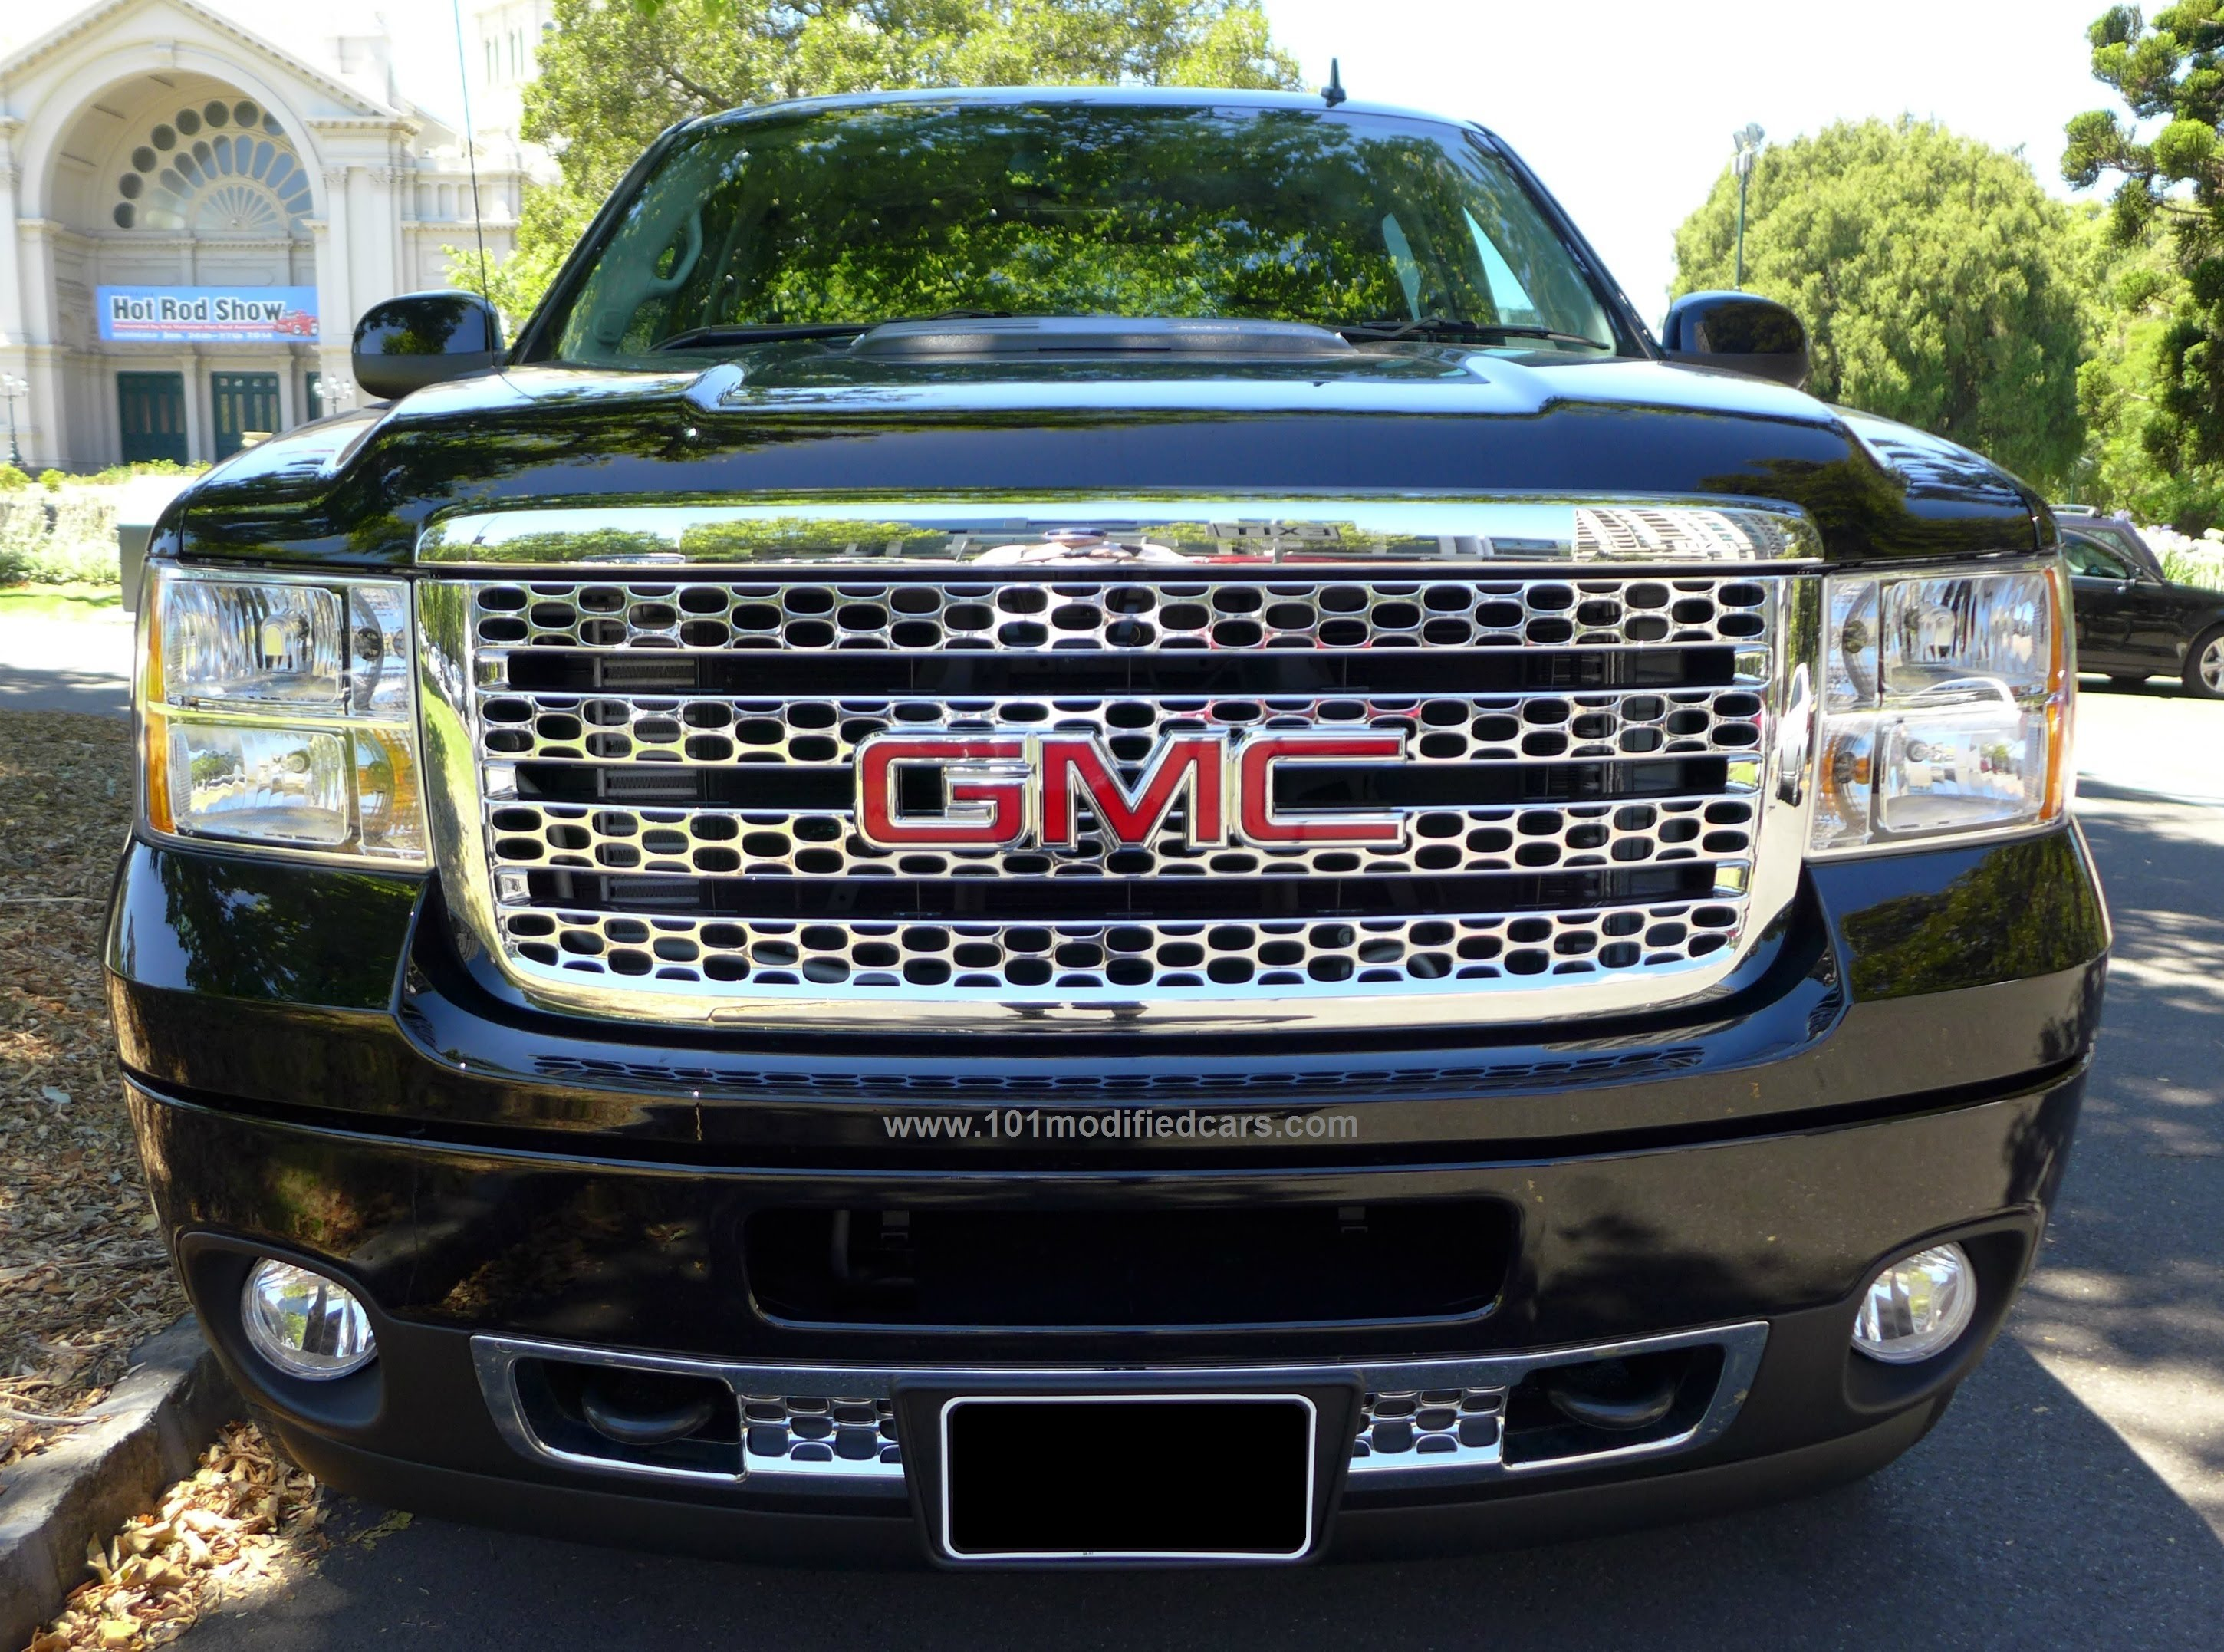 info yukon specs photos ride gmc at denali original modification